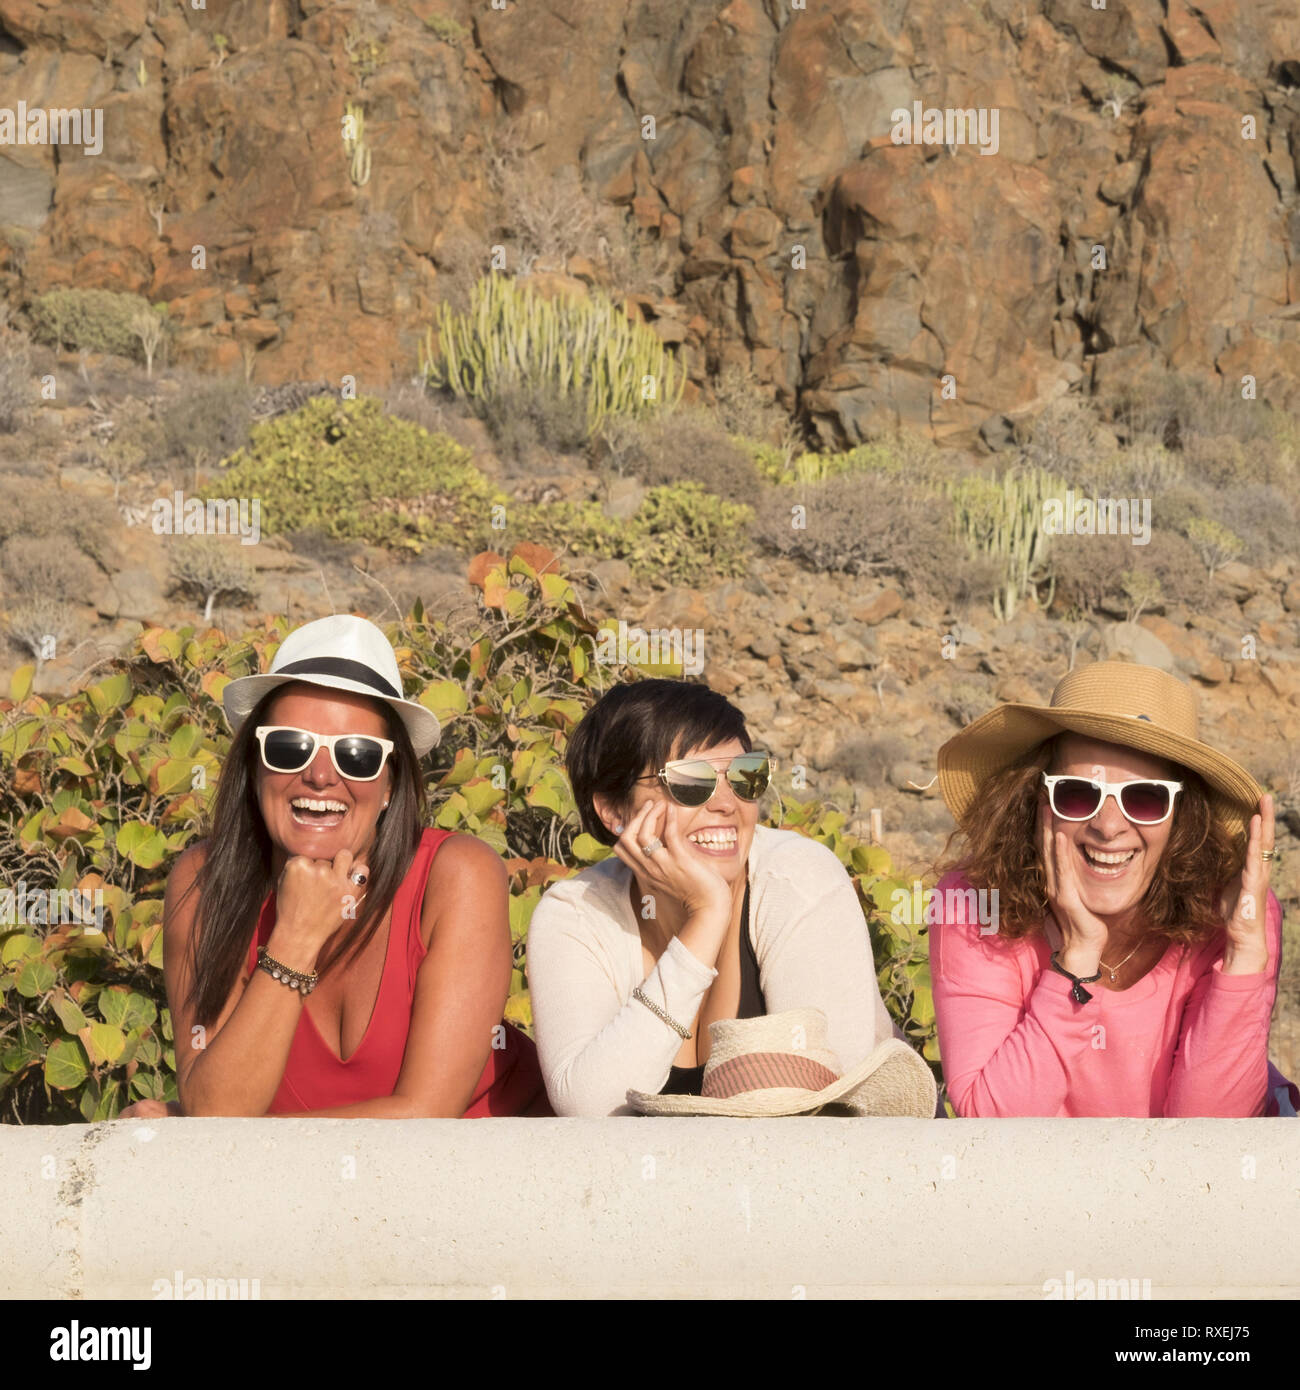 Happiness concept with three young friends women together with hats and sunglasses in summer day laughing and having fun - cheerful female people cauc - Stock Image